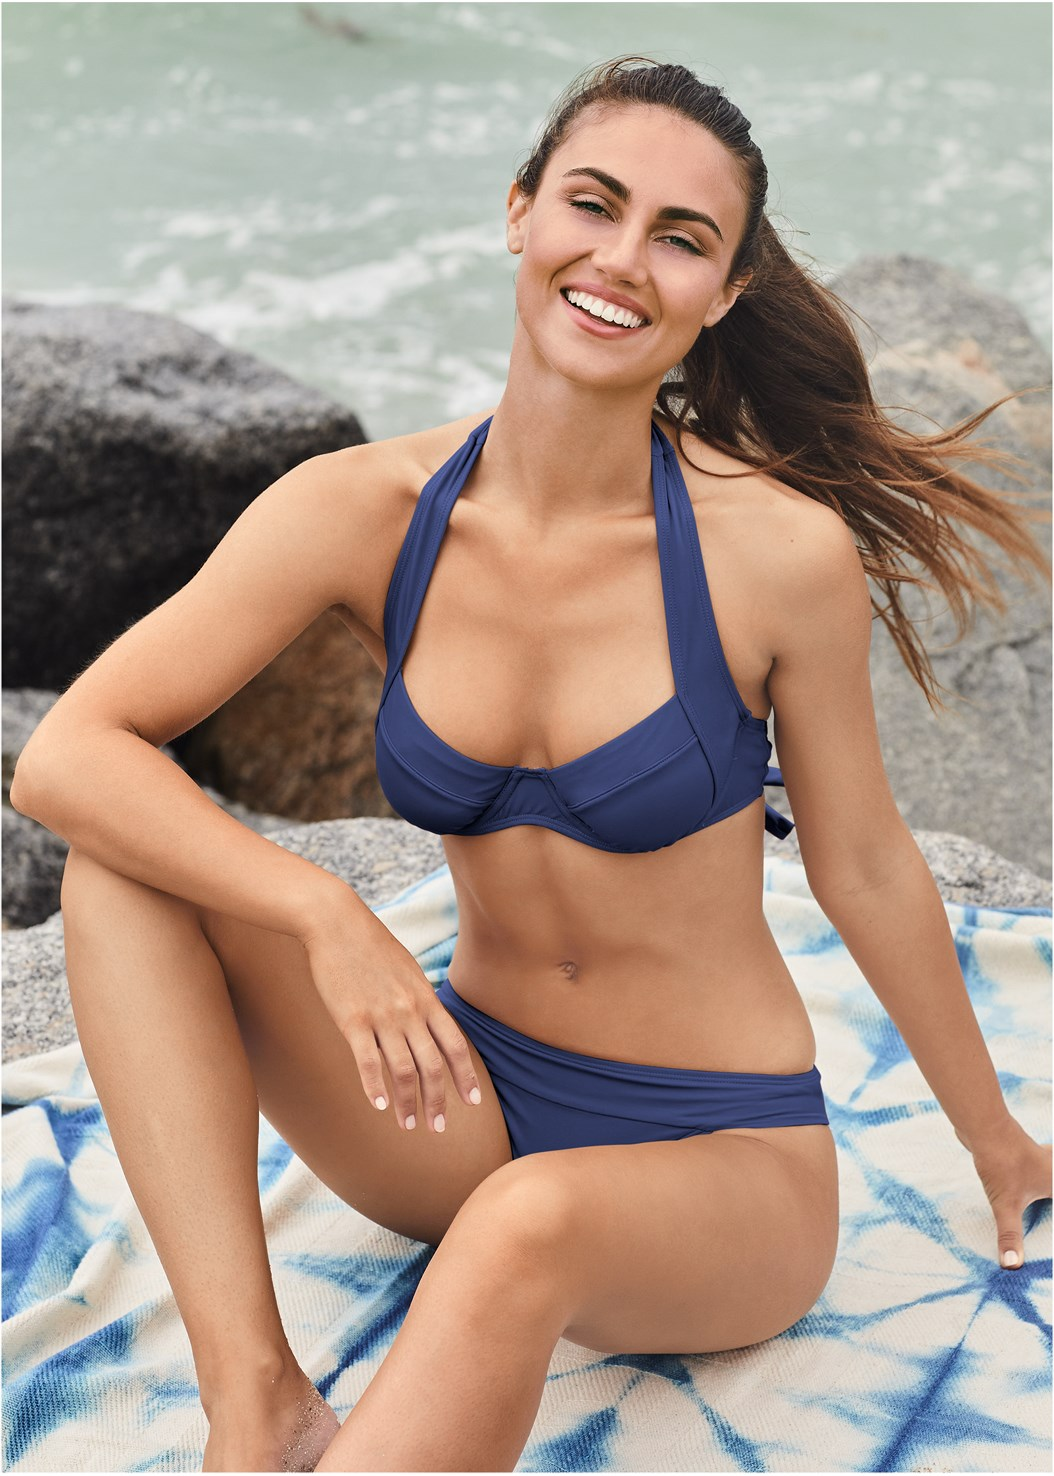 Banded Moderate Swim Bottom,Jillian Underwire Top,Enhancer Push Up Ring Halter Triangle Top ,Triangle String Bikini Top